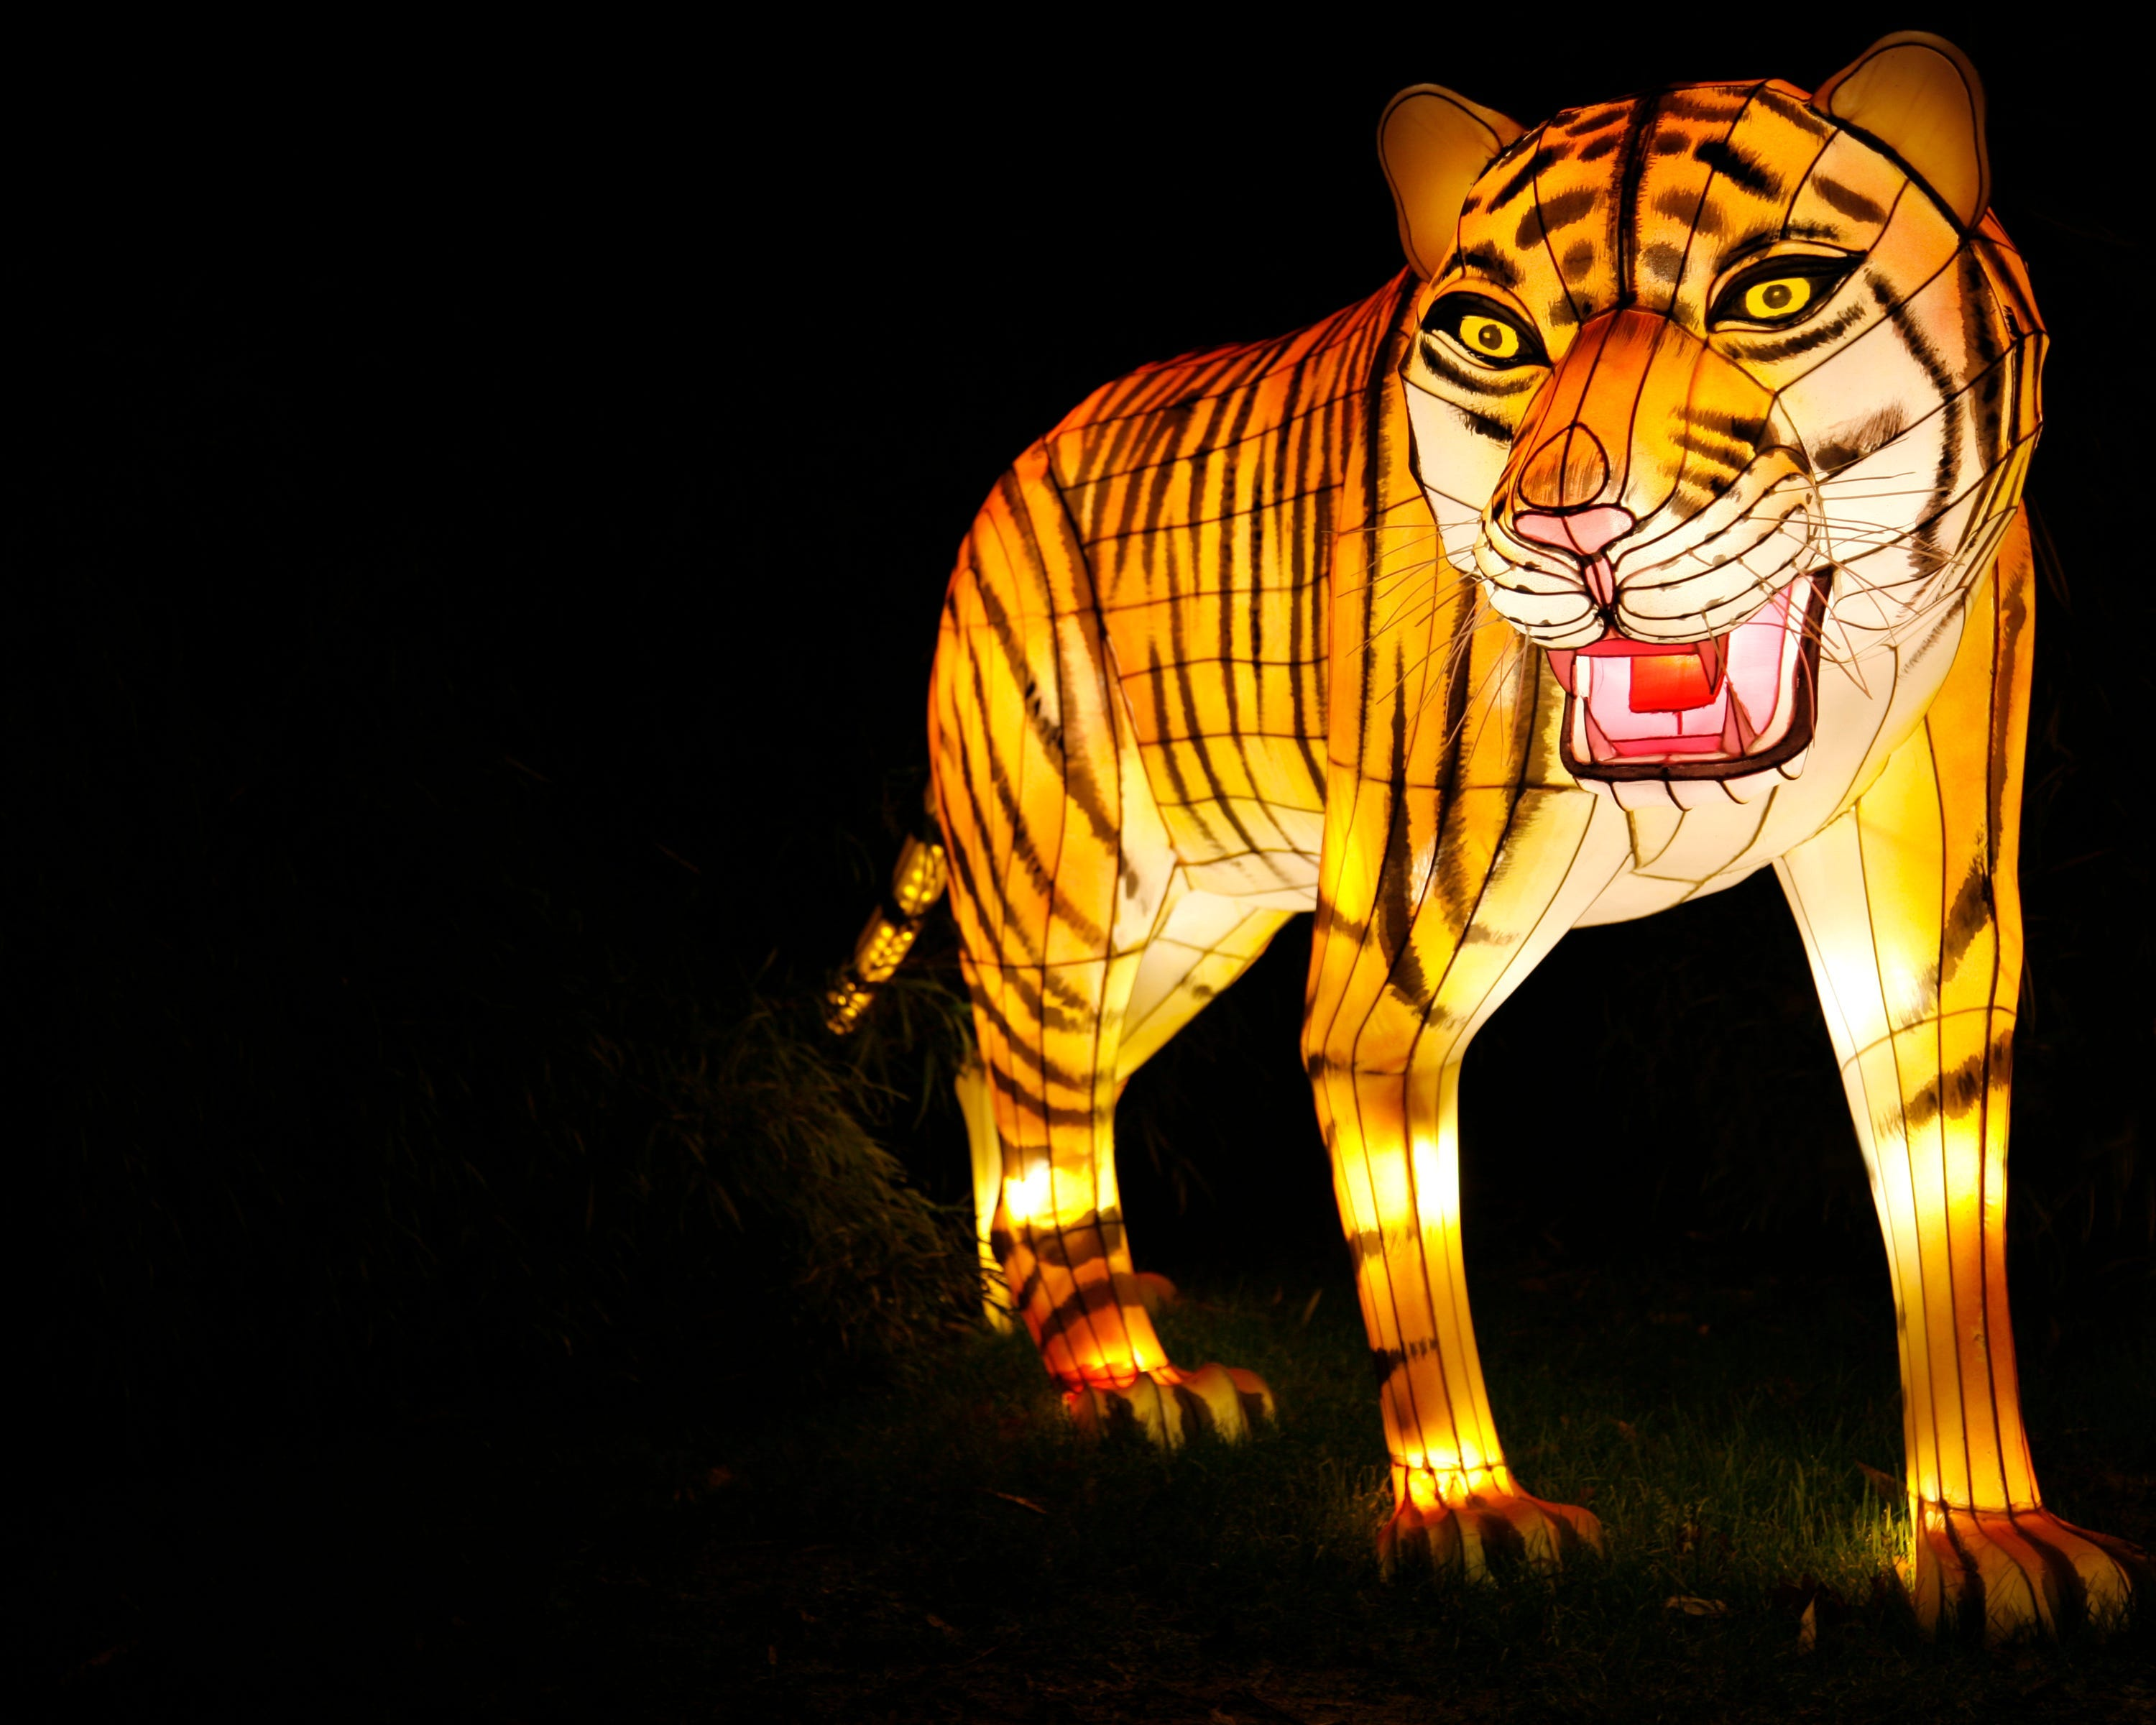 These are the best zoo holiday light displays, according to readers